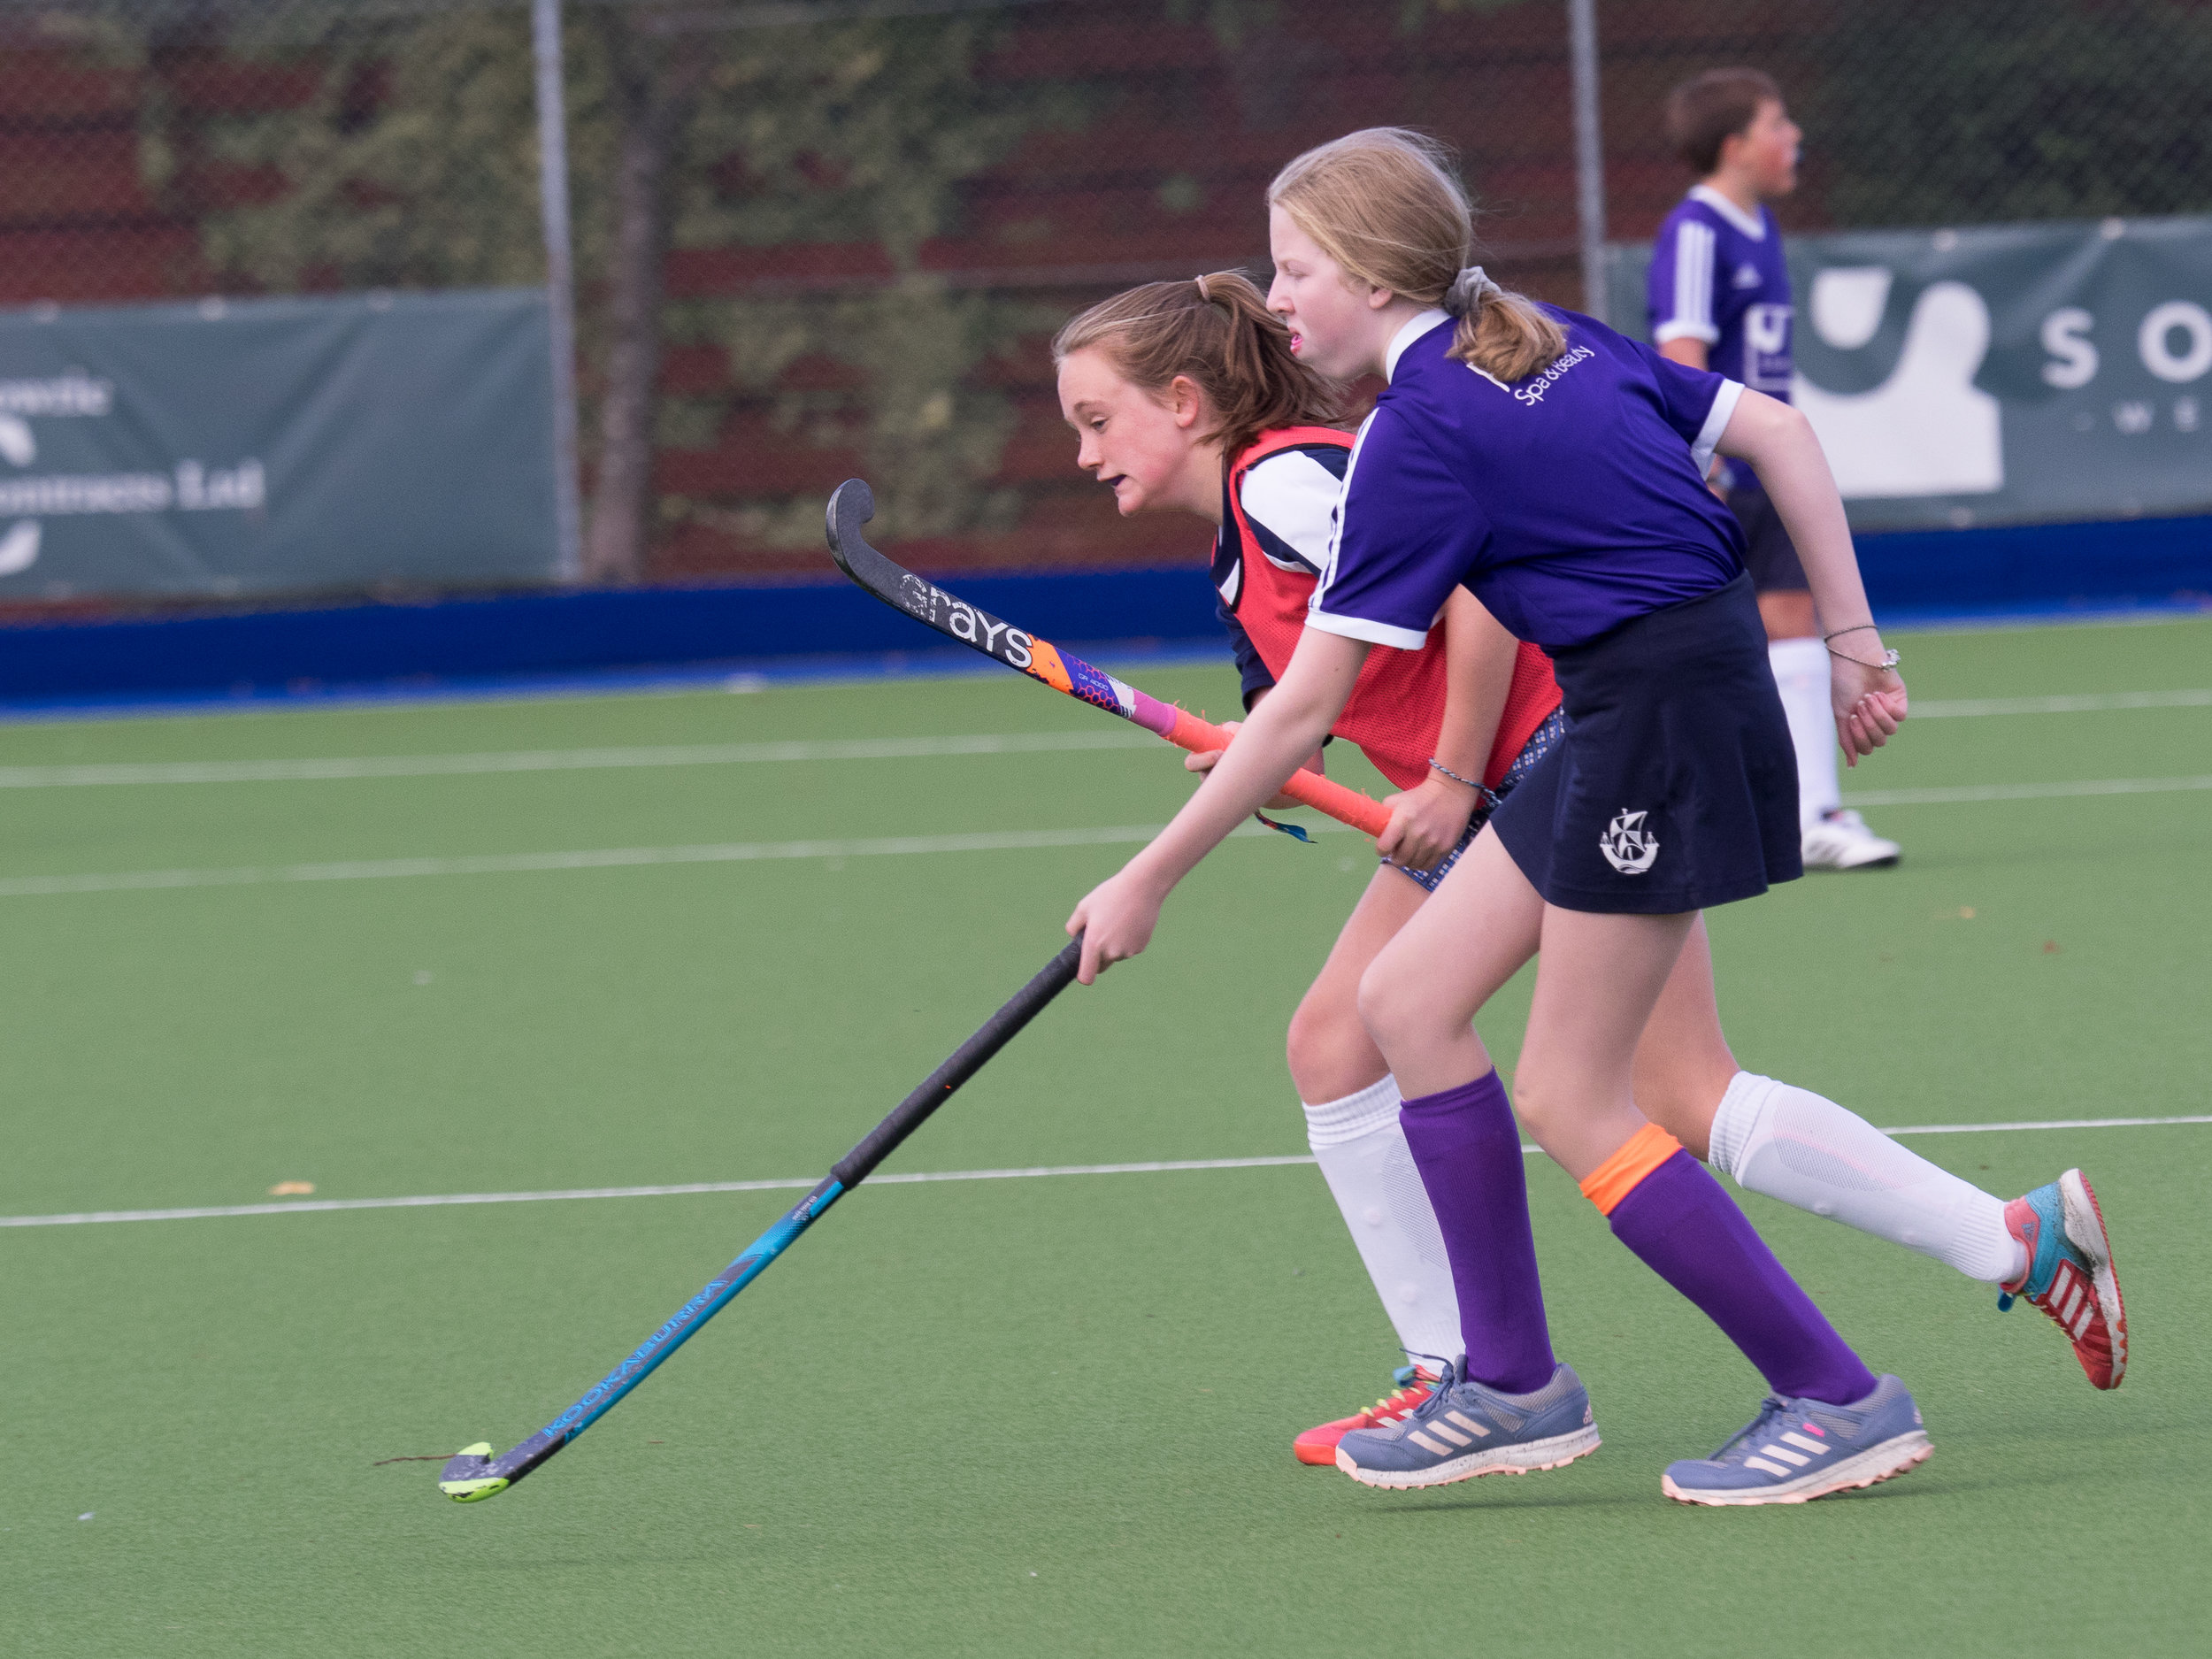 Kinross Hockey Sept 30th-11.jpg